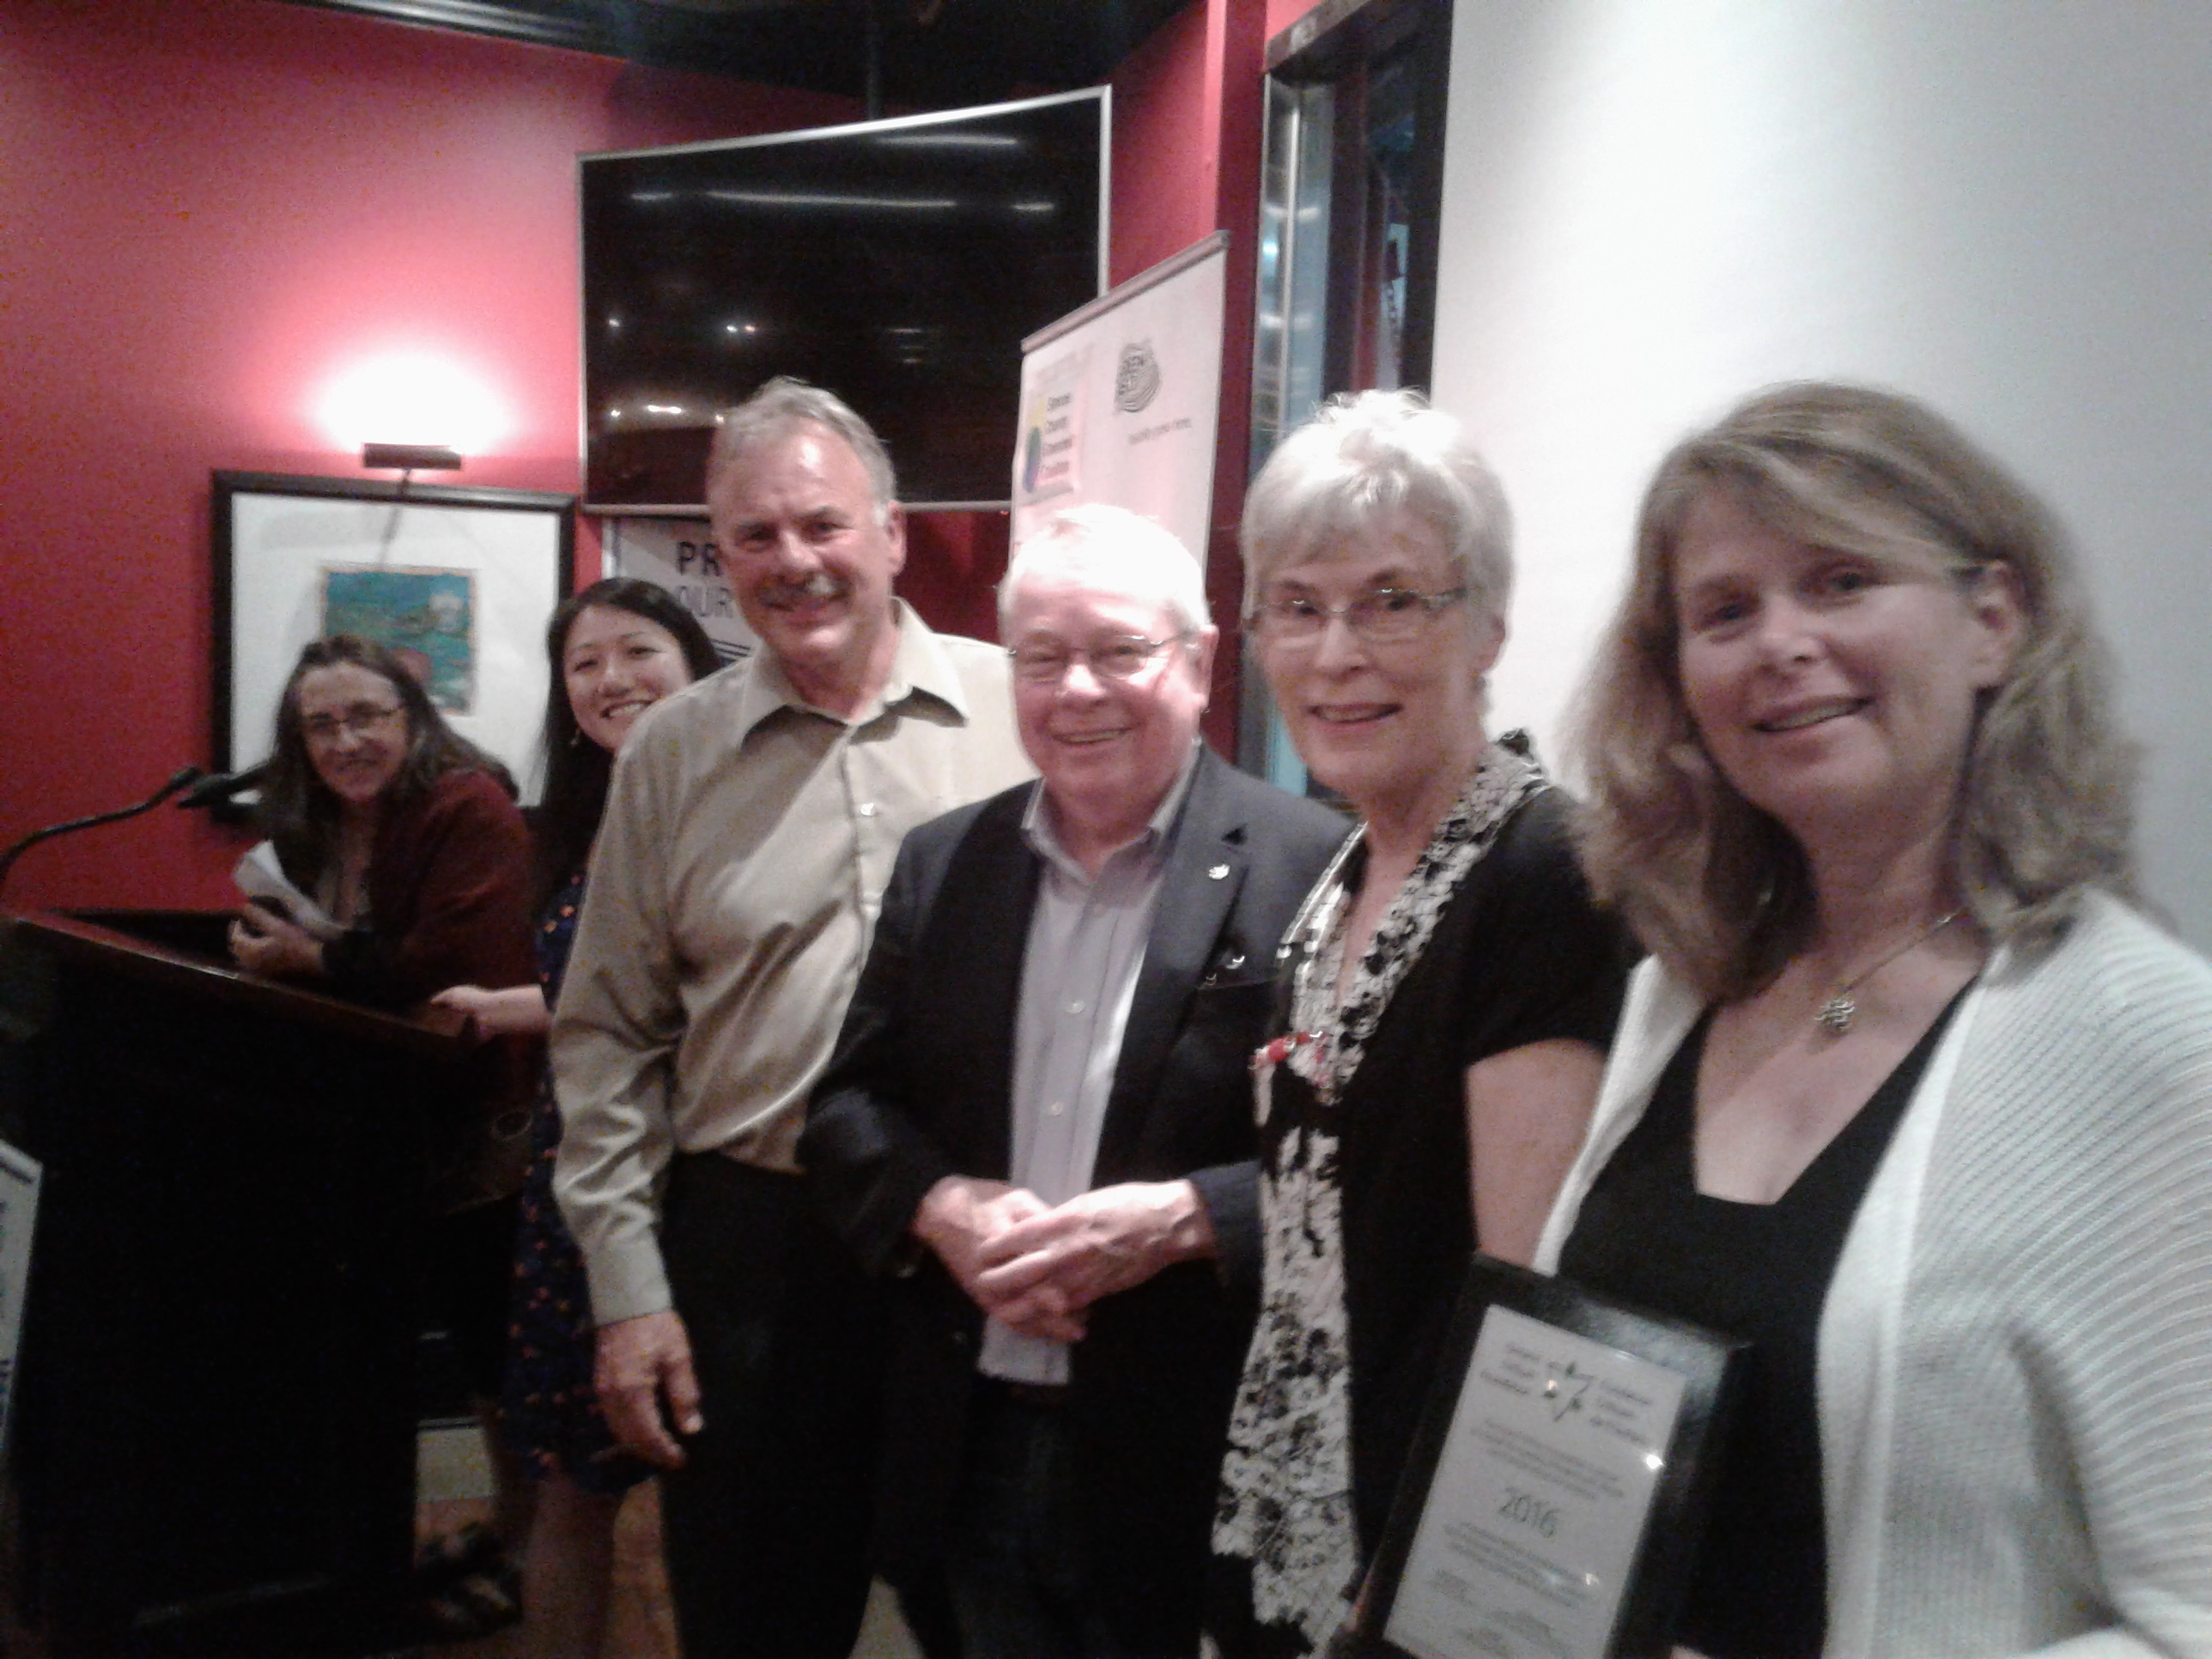 From left, Debbe Crandall of the Moraine Partnership, Joyce Chau of Eco-Spark, former ECO Gord Miller, elder statesman David Crombie, York Simcoe MPP Julia Munro and Anne Bell of Ontario Nature were among the speakers at a meeting  in Barrie on Wednesday. -AWARE Simcoe photo